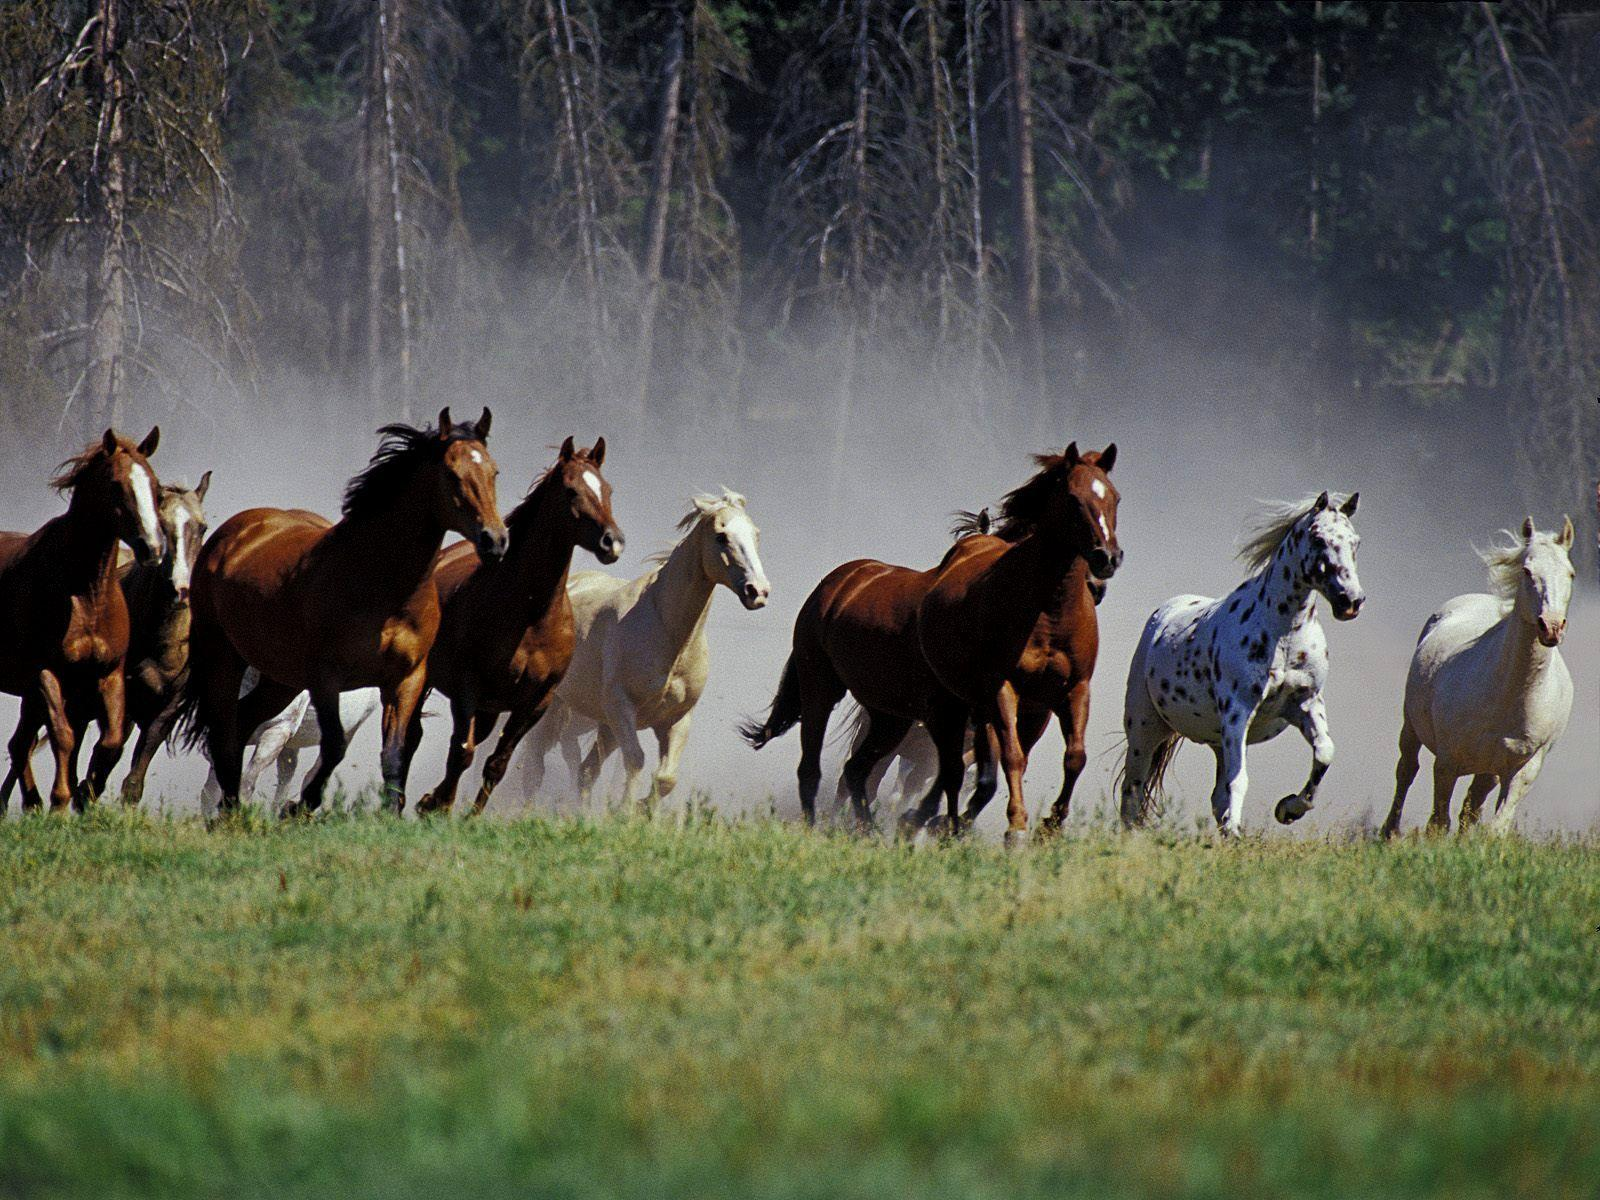 Seven Horses Wallpapers Wallpaper Cave